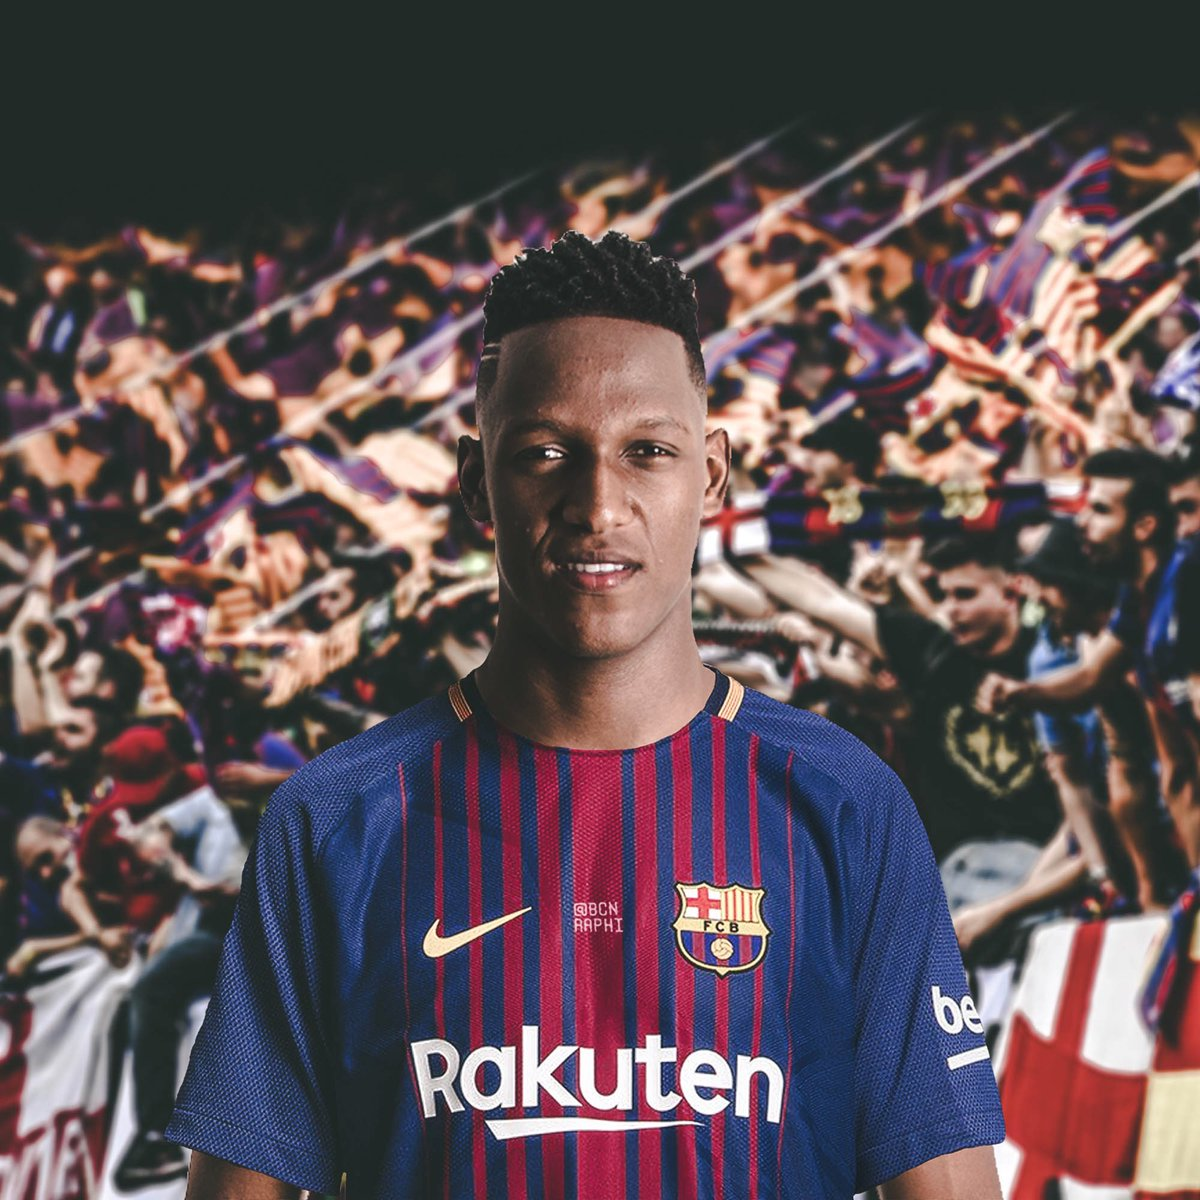 Raphi On Twitter Welcome To Barca Yerry Mina Edits Fc Barcelona Agreed To Pay 12 3m To Palmeiras For The Transfer Of Yerry Mina The Documents Are Completed Yerry Mina Is A